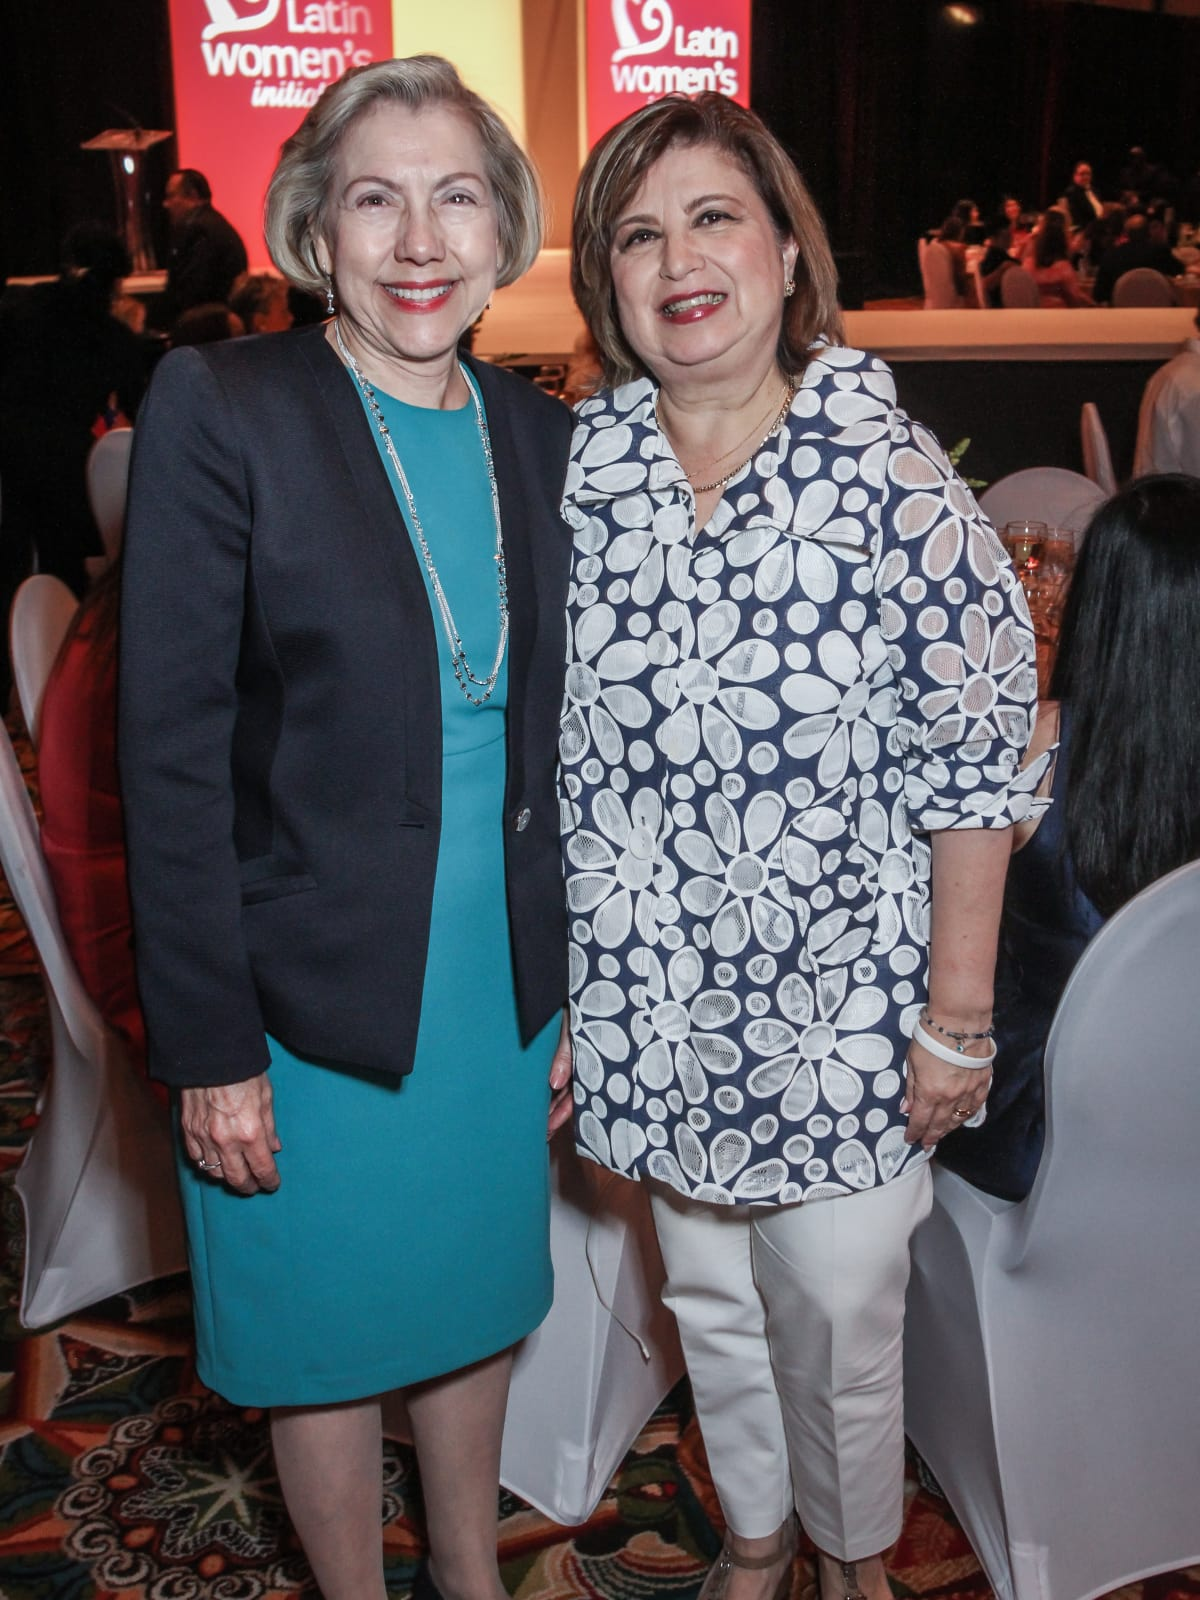 Latin Women's Initiative Luncheon, Elva Flores and Leticia Fallick